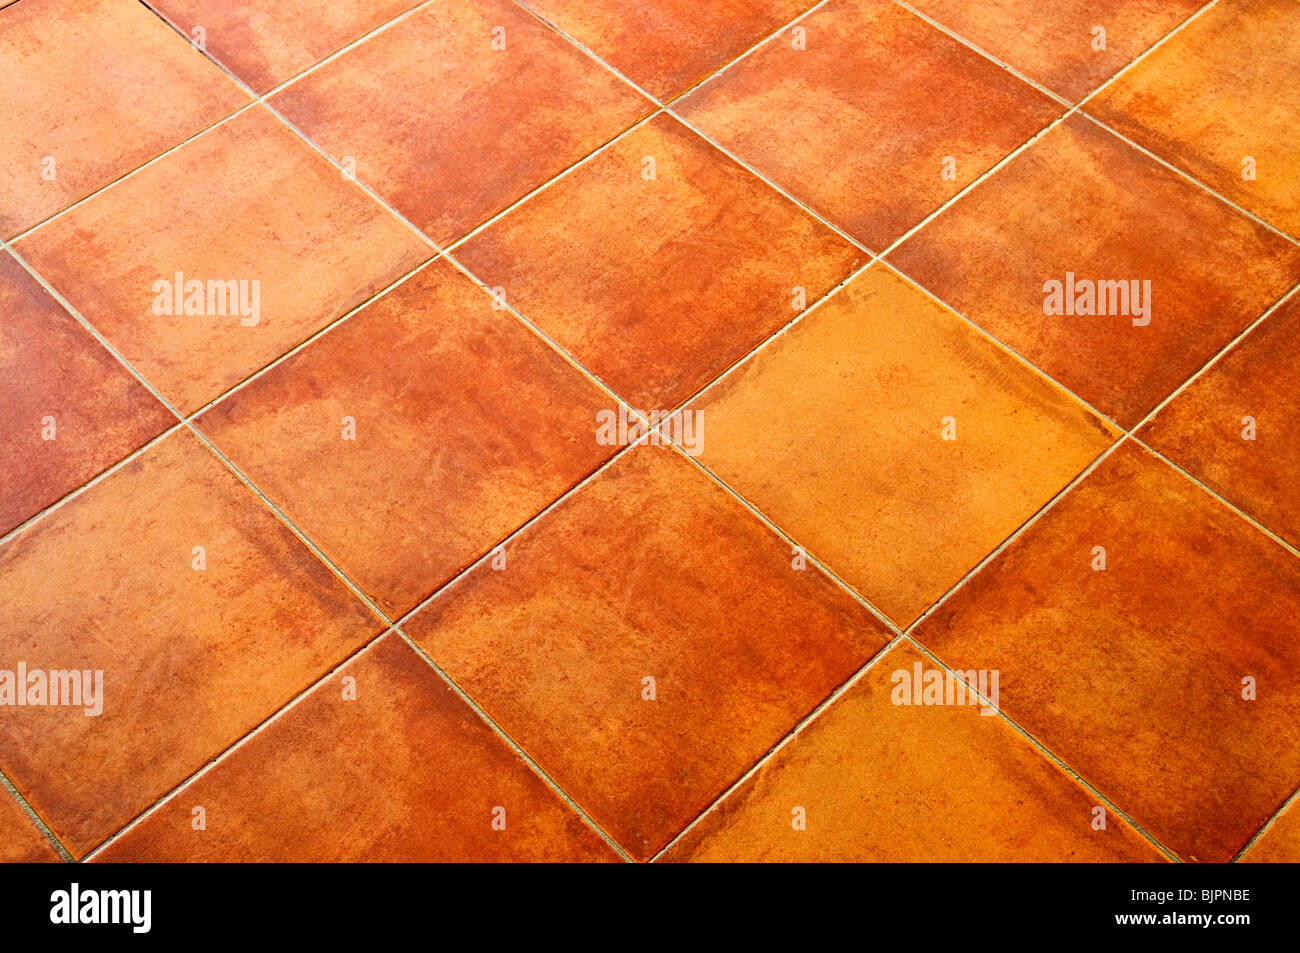 Tiling Ceramic Tile Stock Photos Tiling Ceramic Tile Stock Images